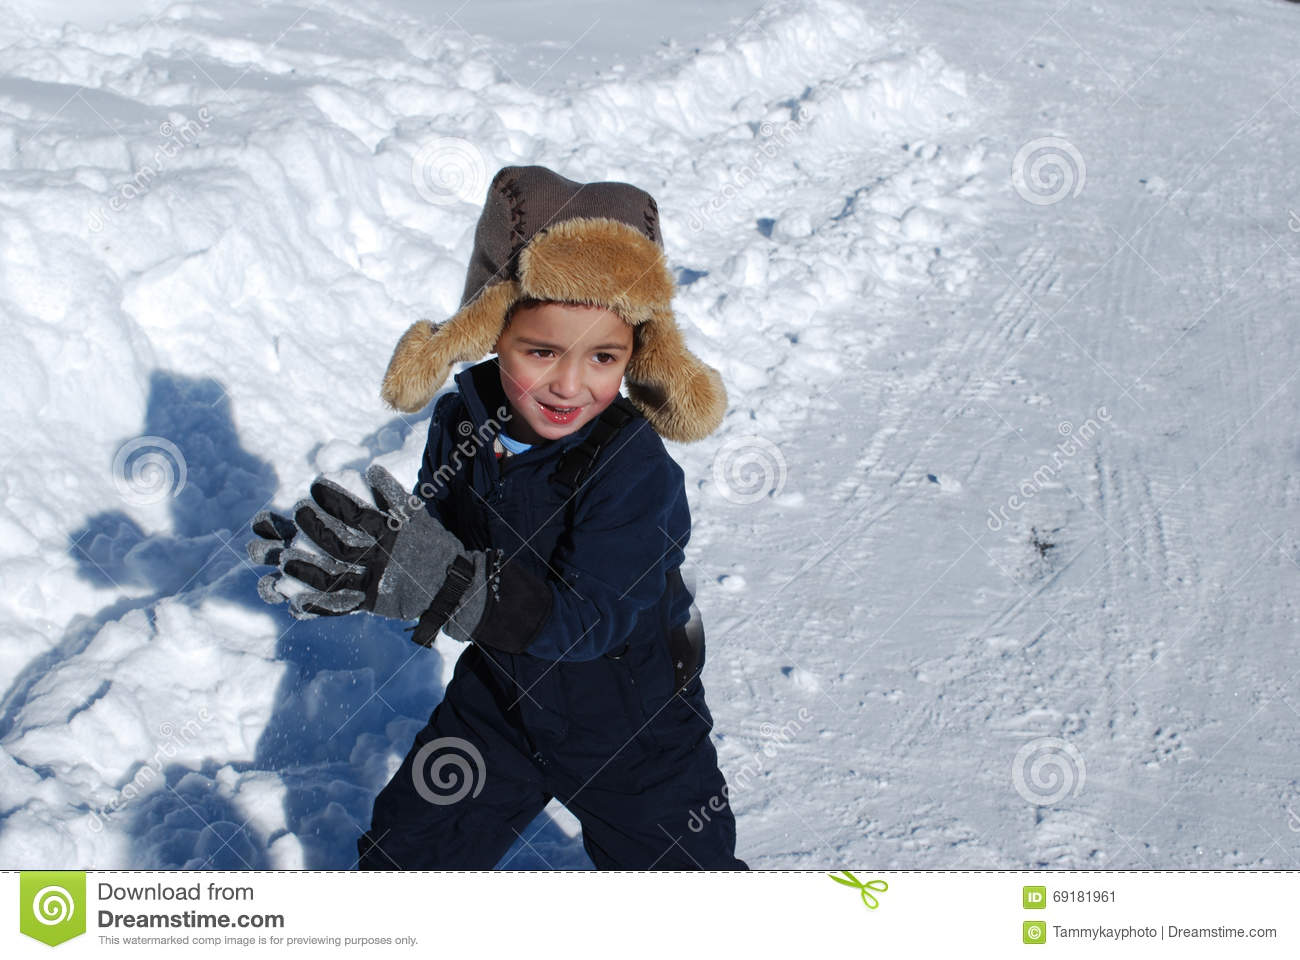 d34996259 Cute Little Boy Playing In The Snow Outdoors. Stock Image - Image of ...